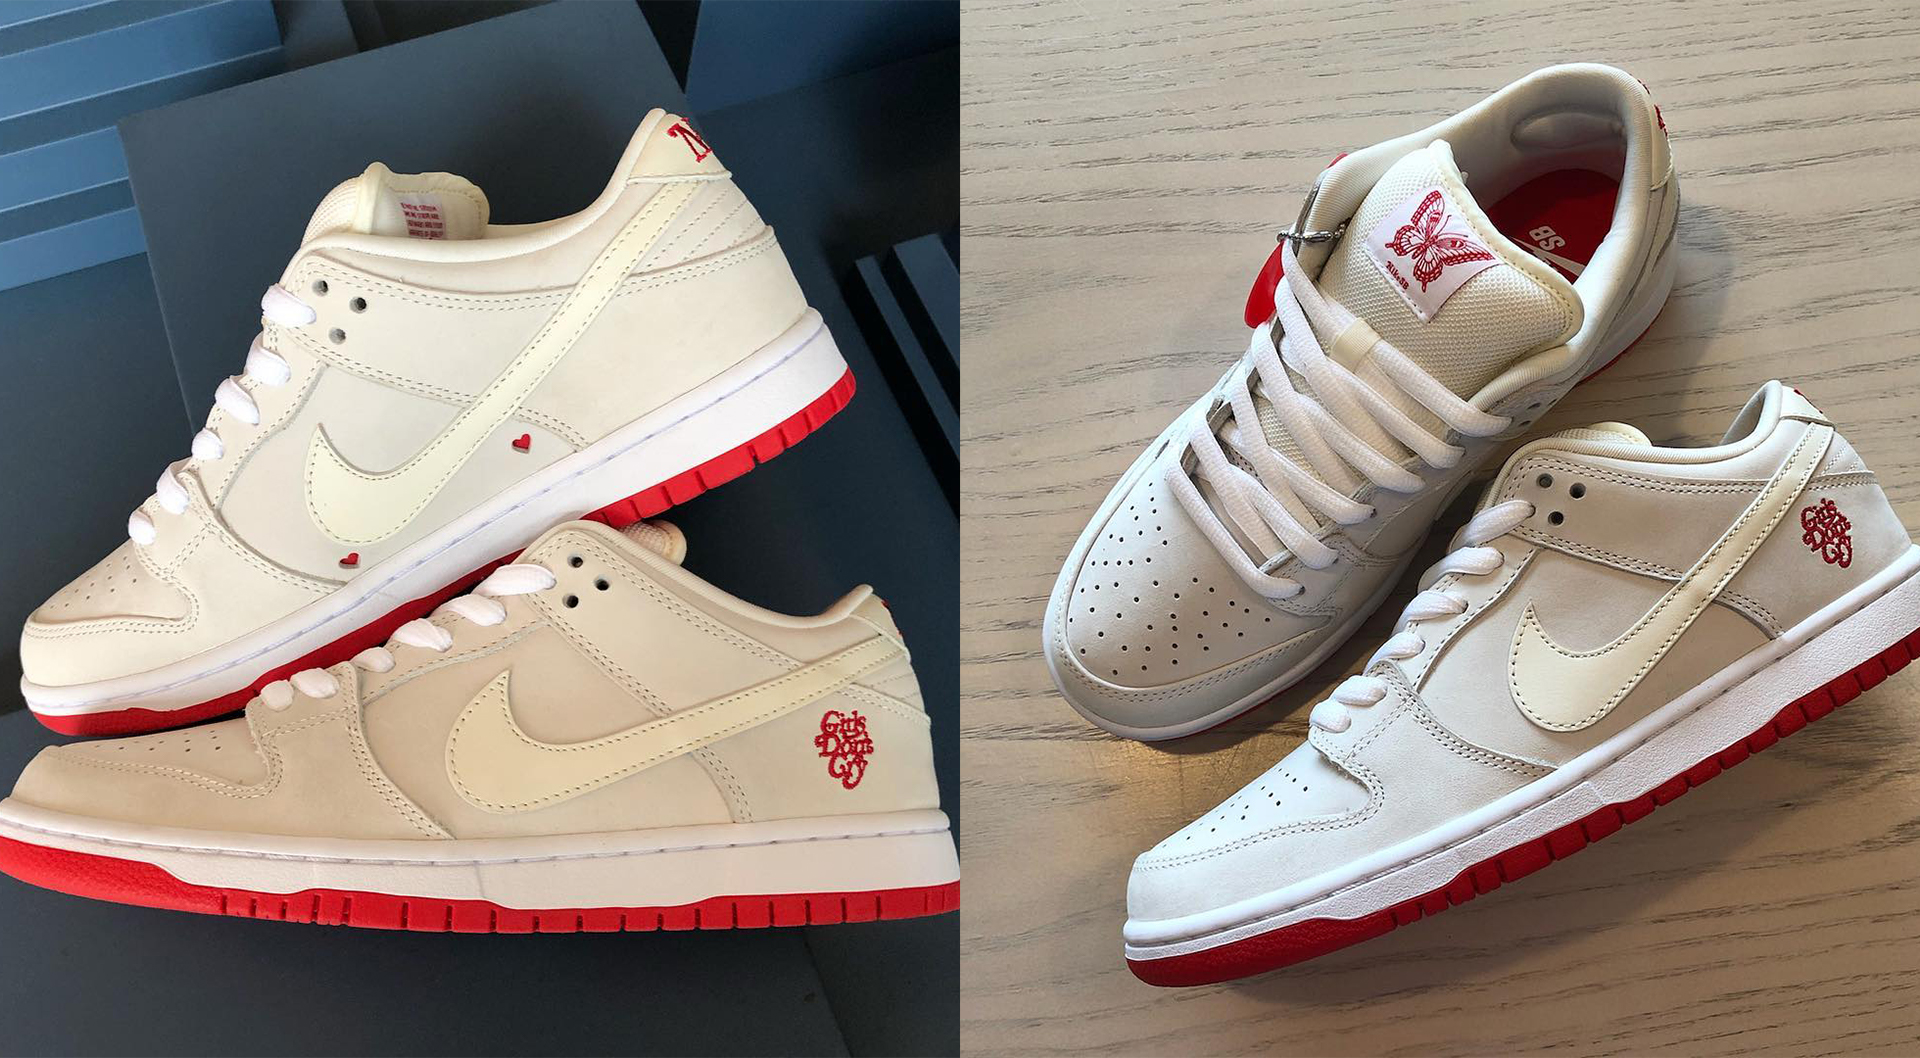 49c91fb1943 The Girls Don t Cry x Nike SB Dunk Low Will Release In 2019